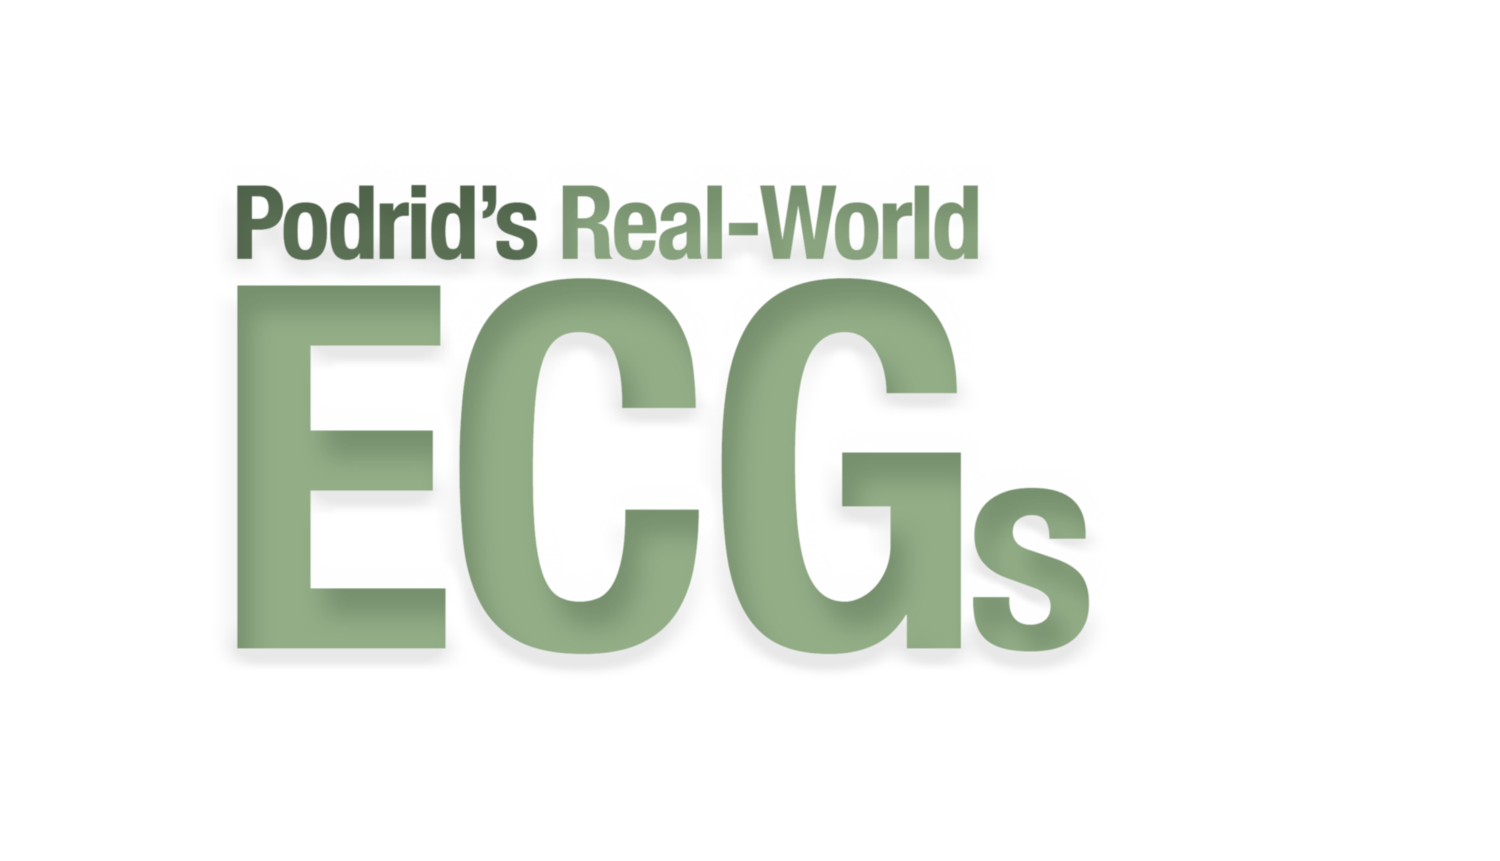 Podrid's Real-World ECGs - The Art and Practice of Clinical ECG Interpretation